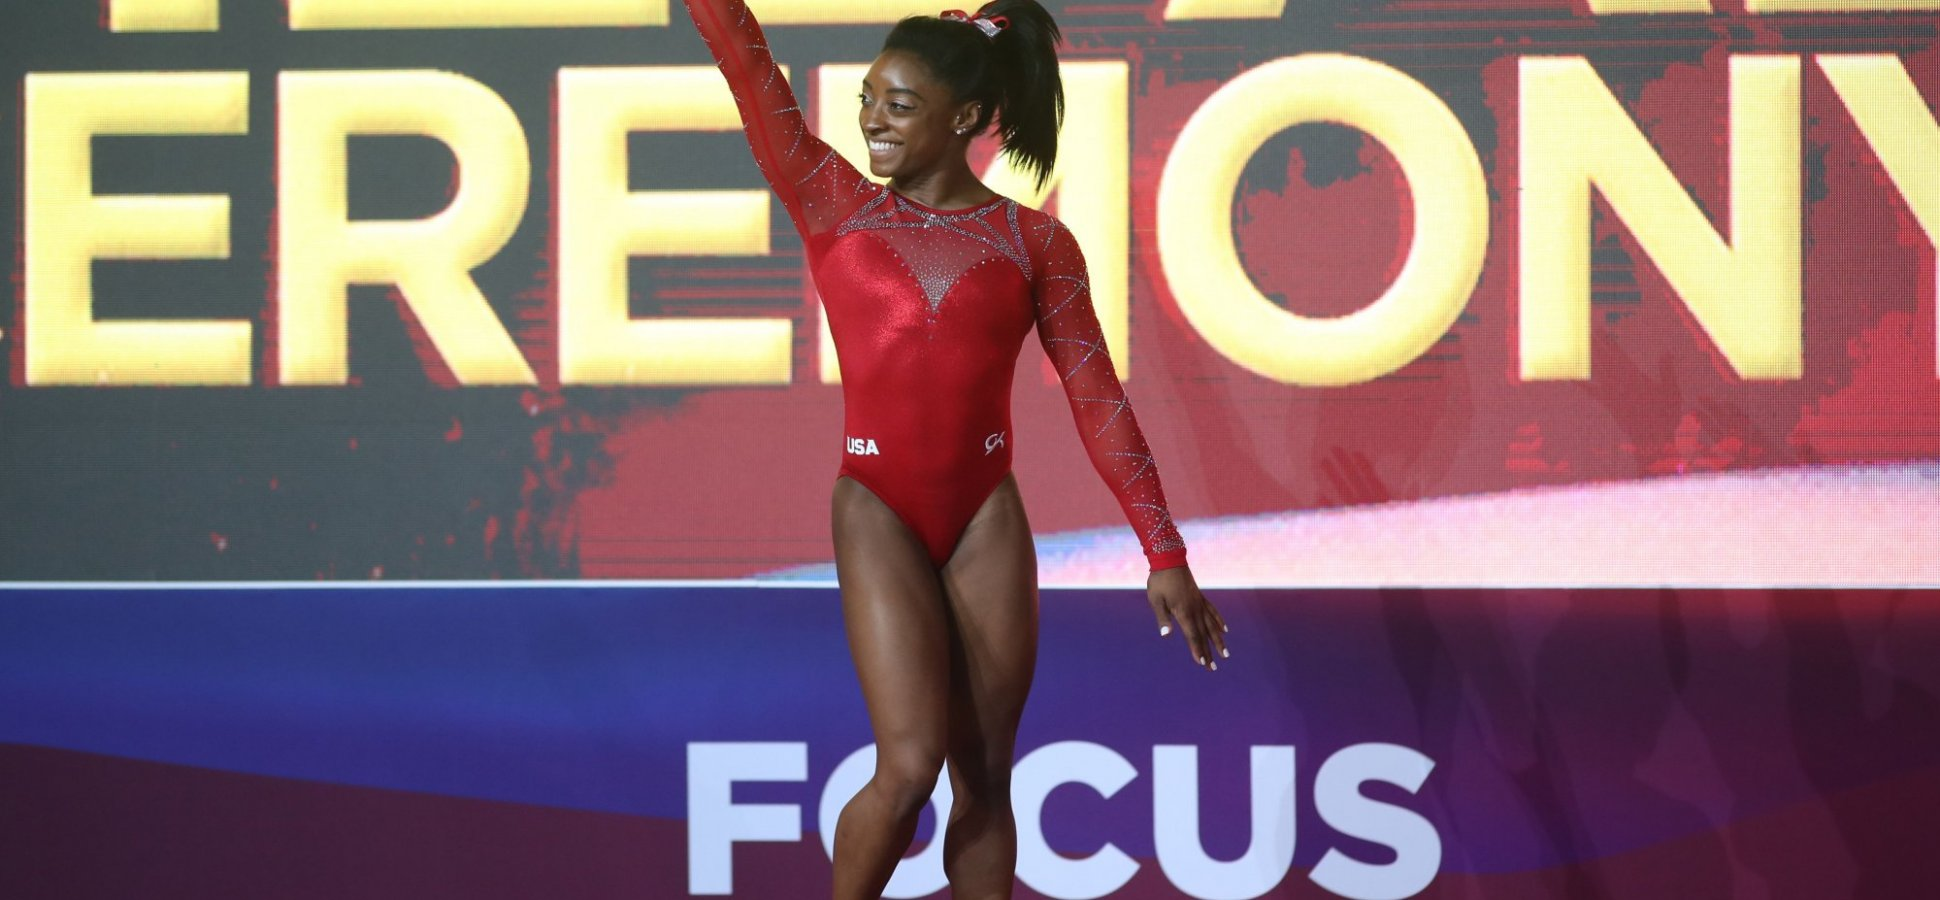 Gymnast Simone Biles Just Made History, Again. These Are the 2 Words She Uses to Motivate Herself